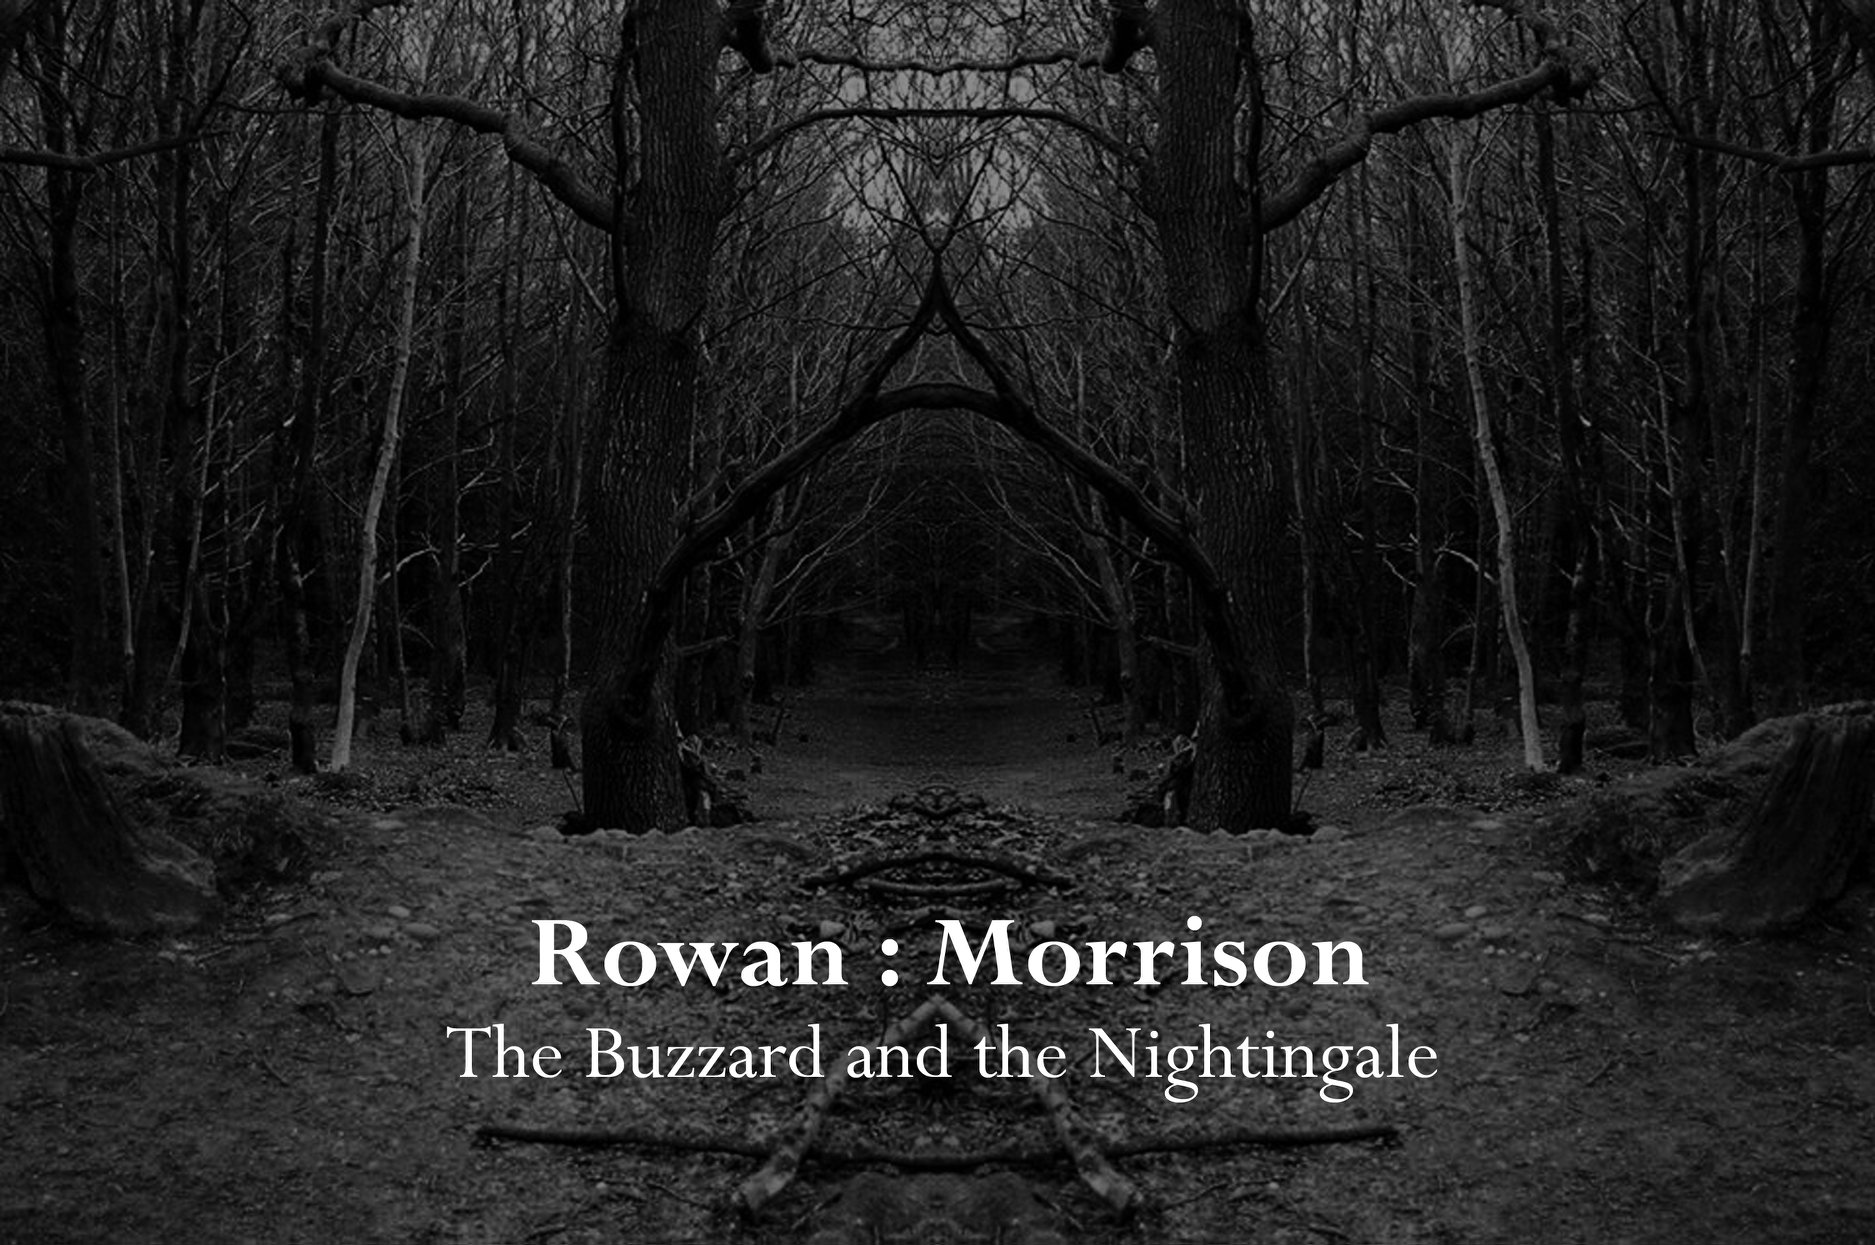 Rowan : Morrison The Buzzard and the Nightingale